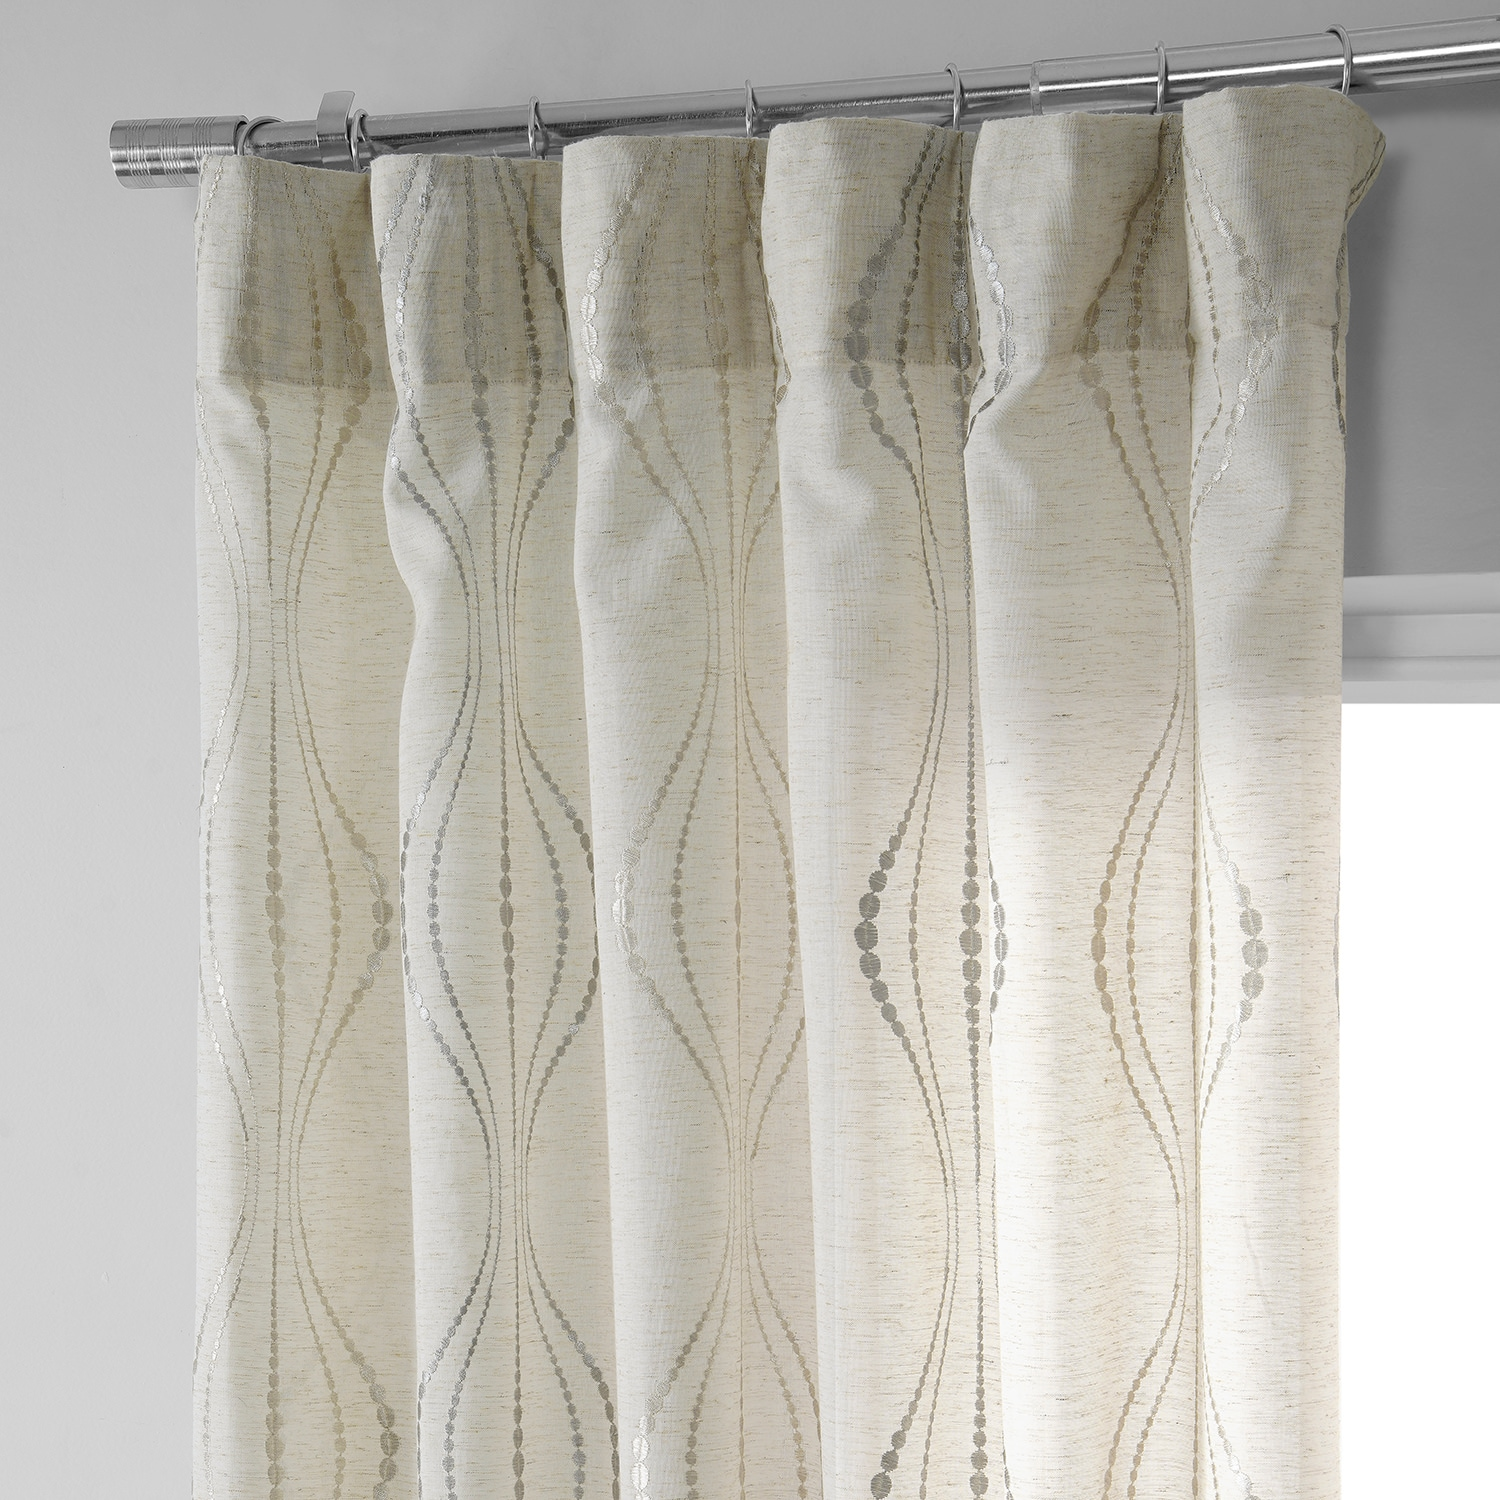 Ikat Lined Drapery Panel Upgrades Aqua Green; Westminster; Cotton; Damask Floral; 50 100 Extra Wide; Custom Curtains; Offer Pleated